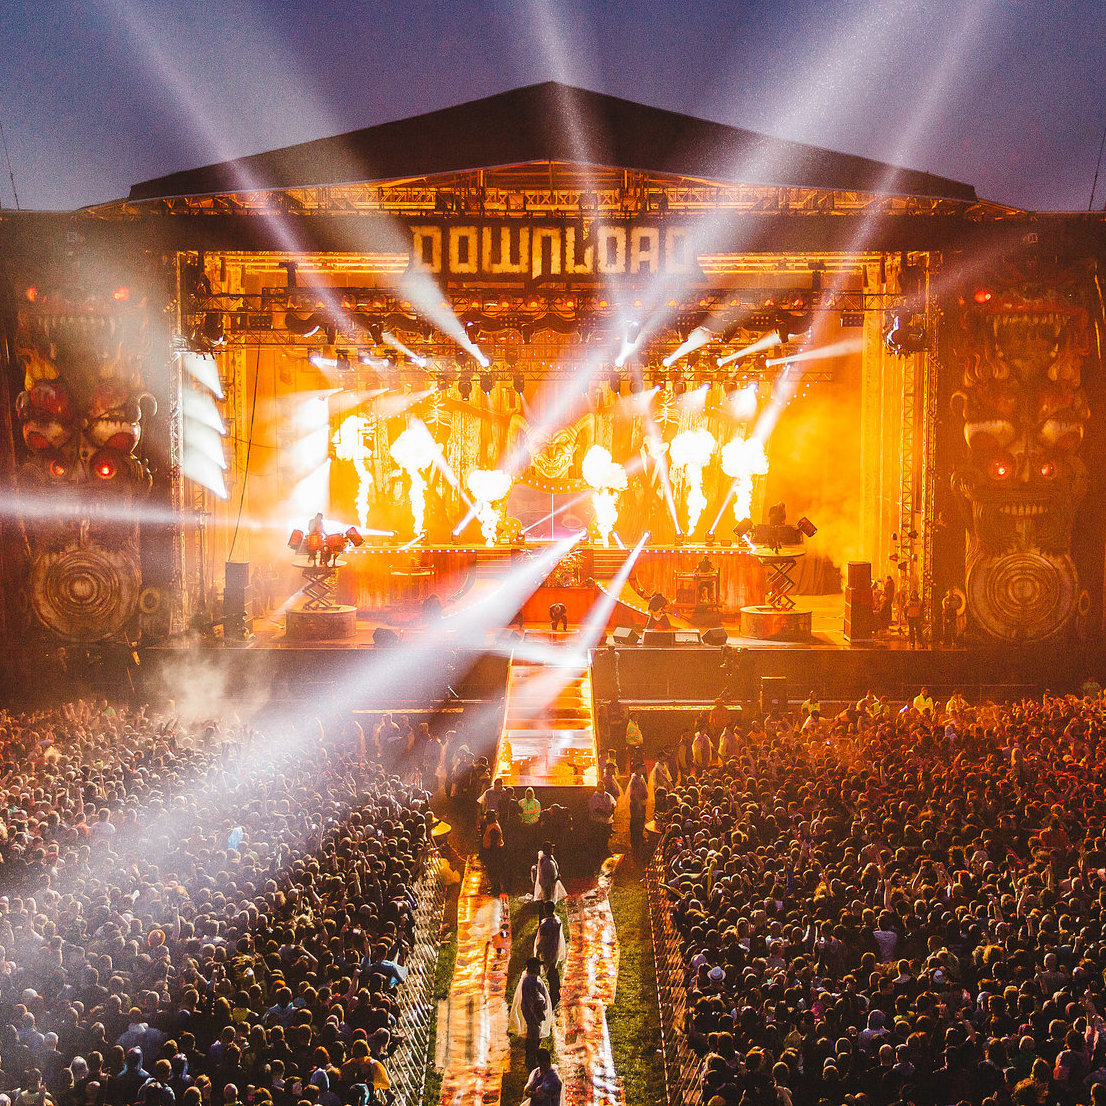 Splendour in the Grass Festival Tickets and Hospitality